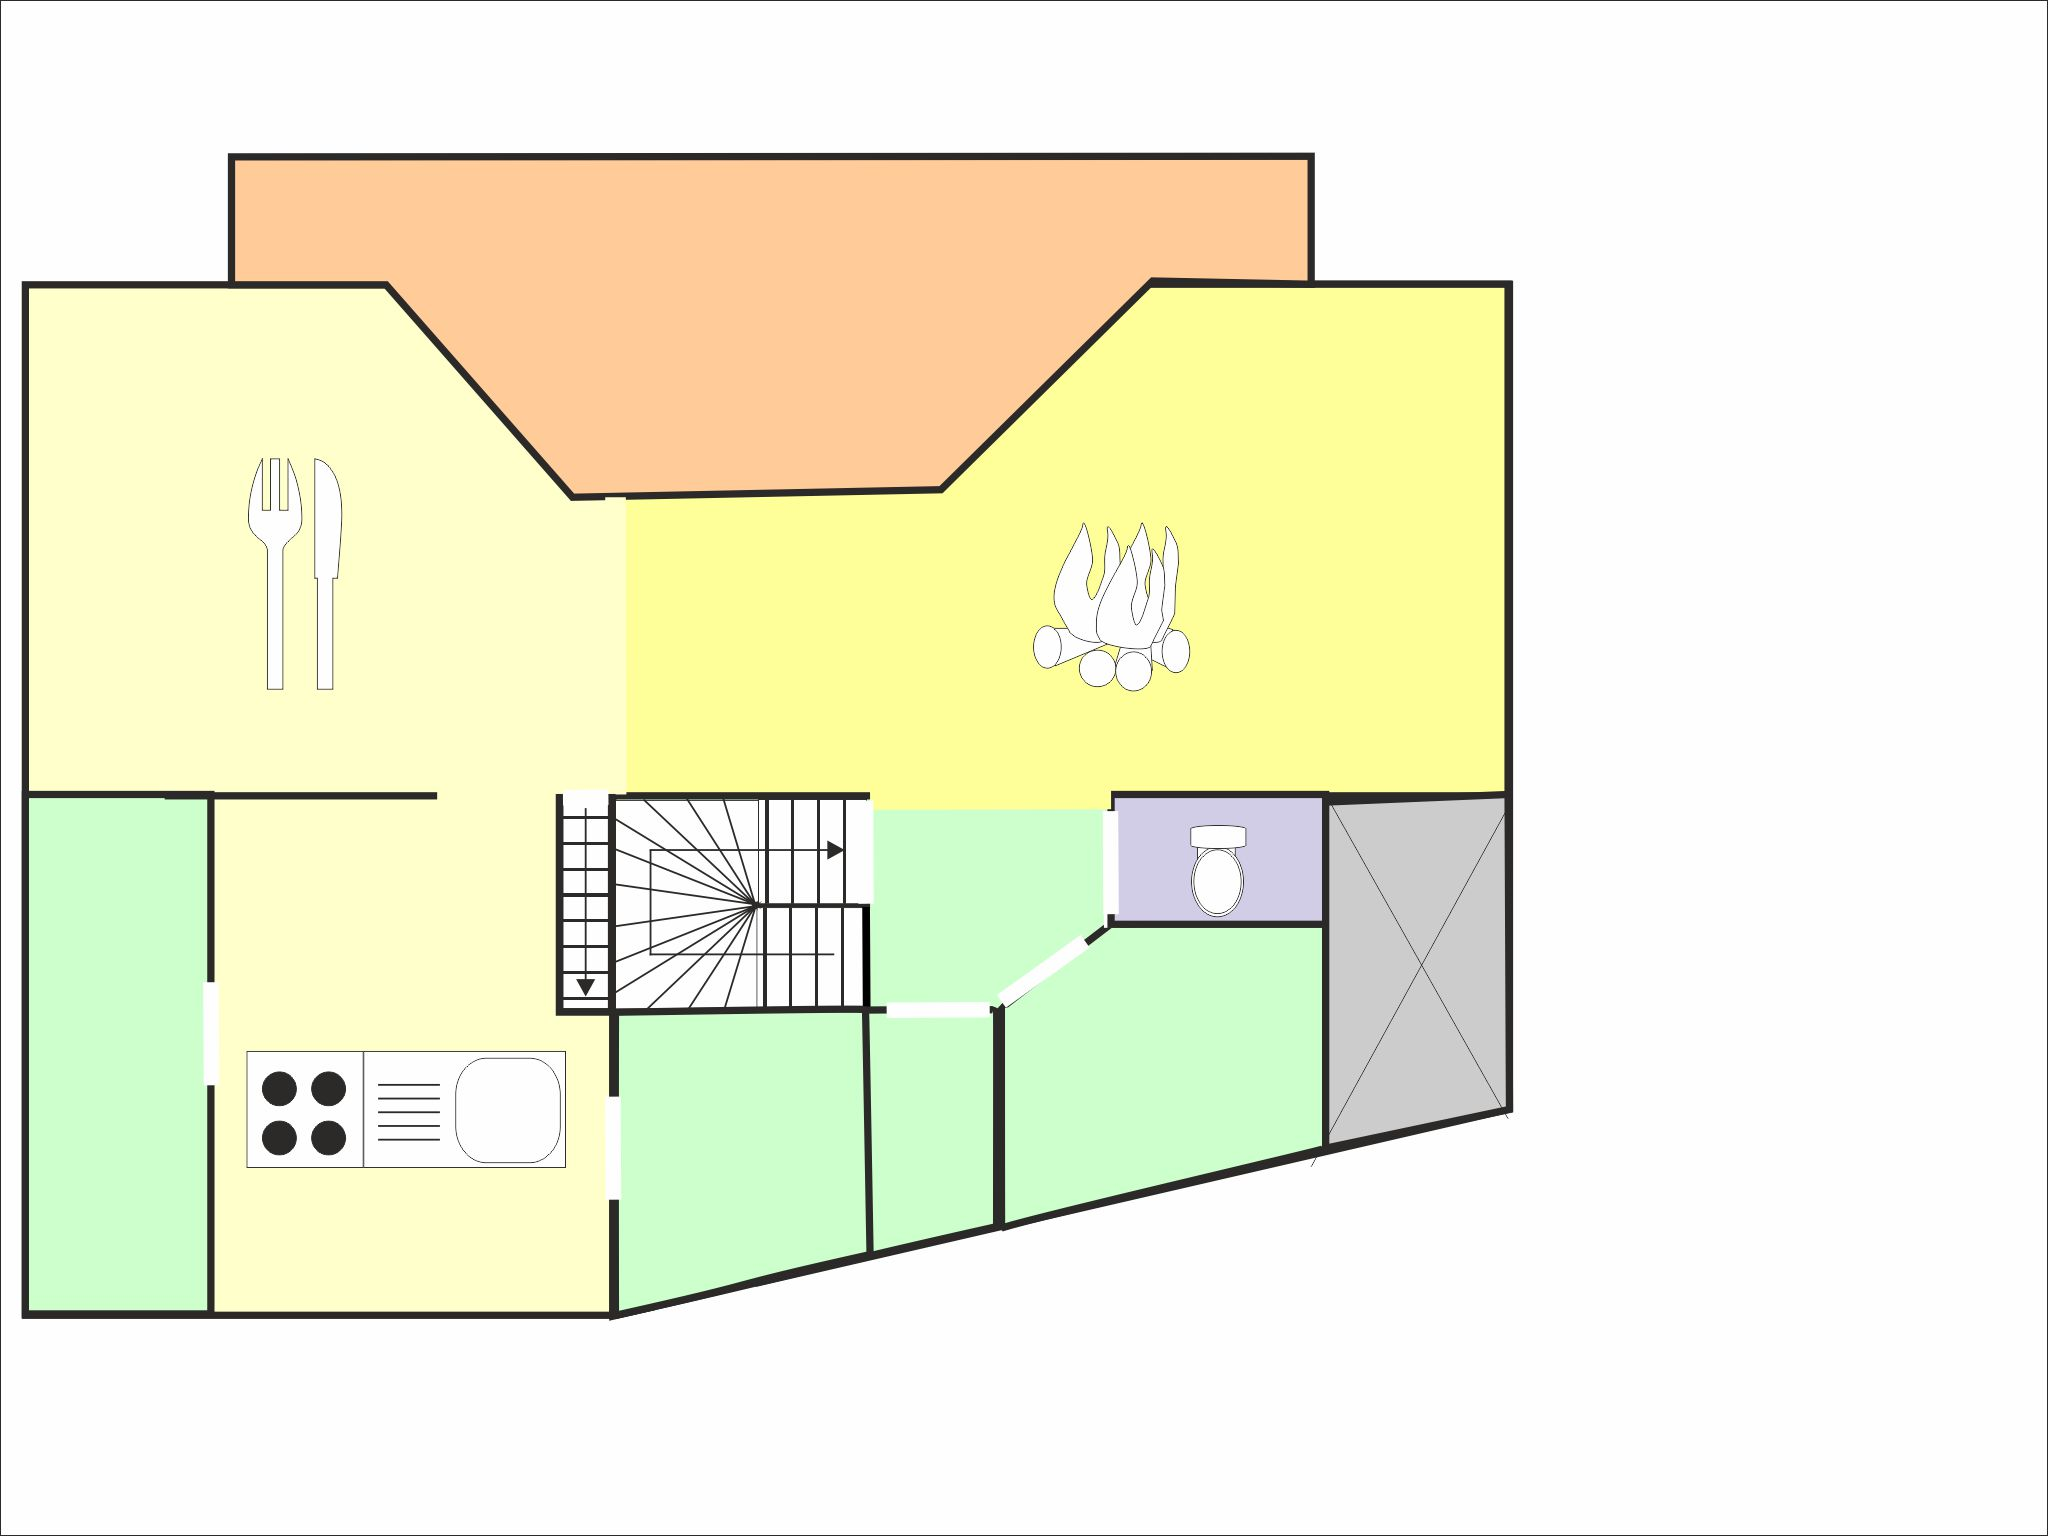 Chalet Ulysse - floor plan - level 3